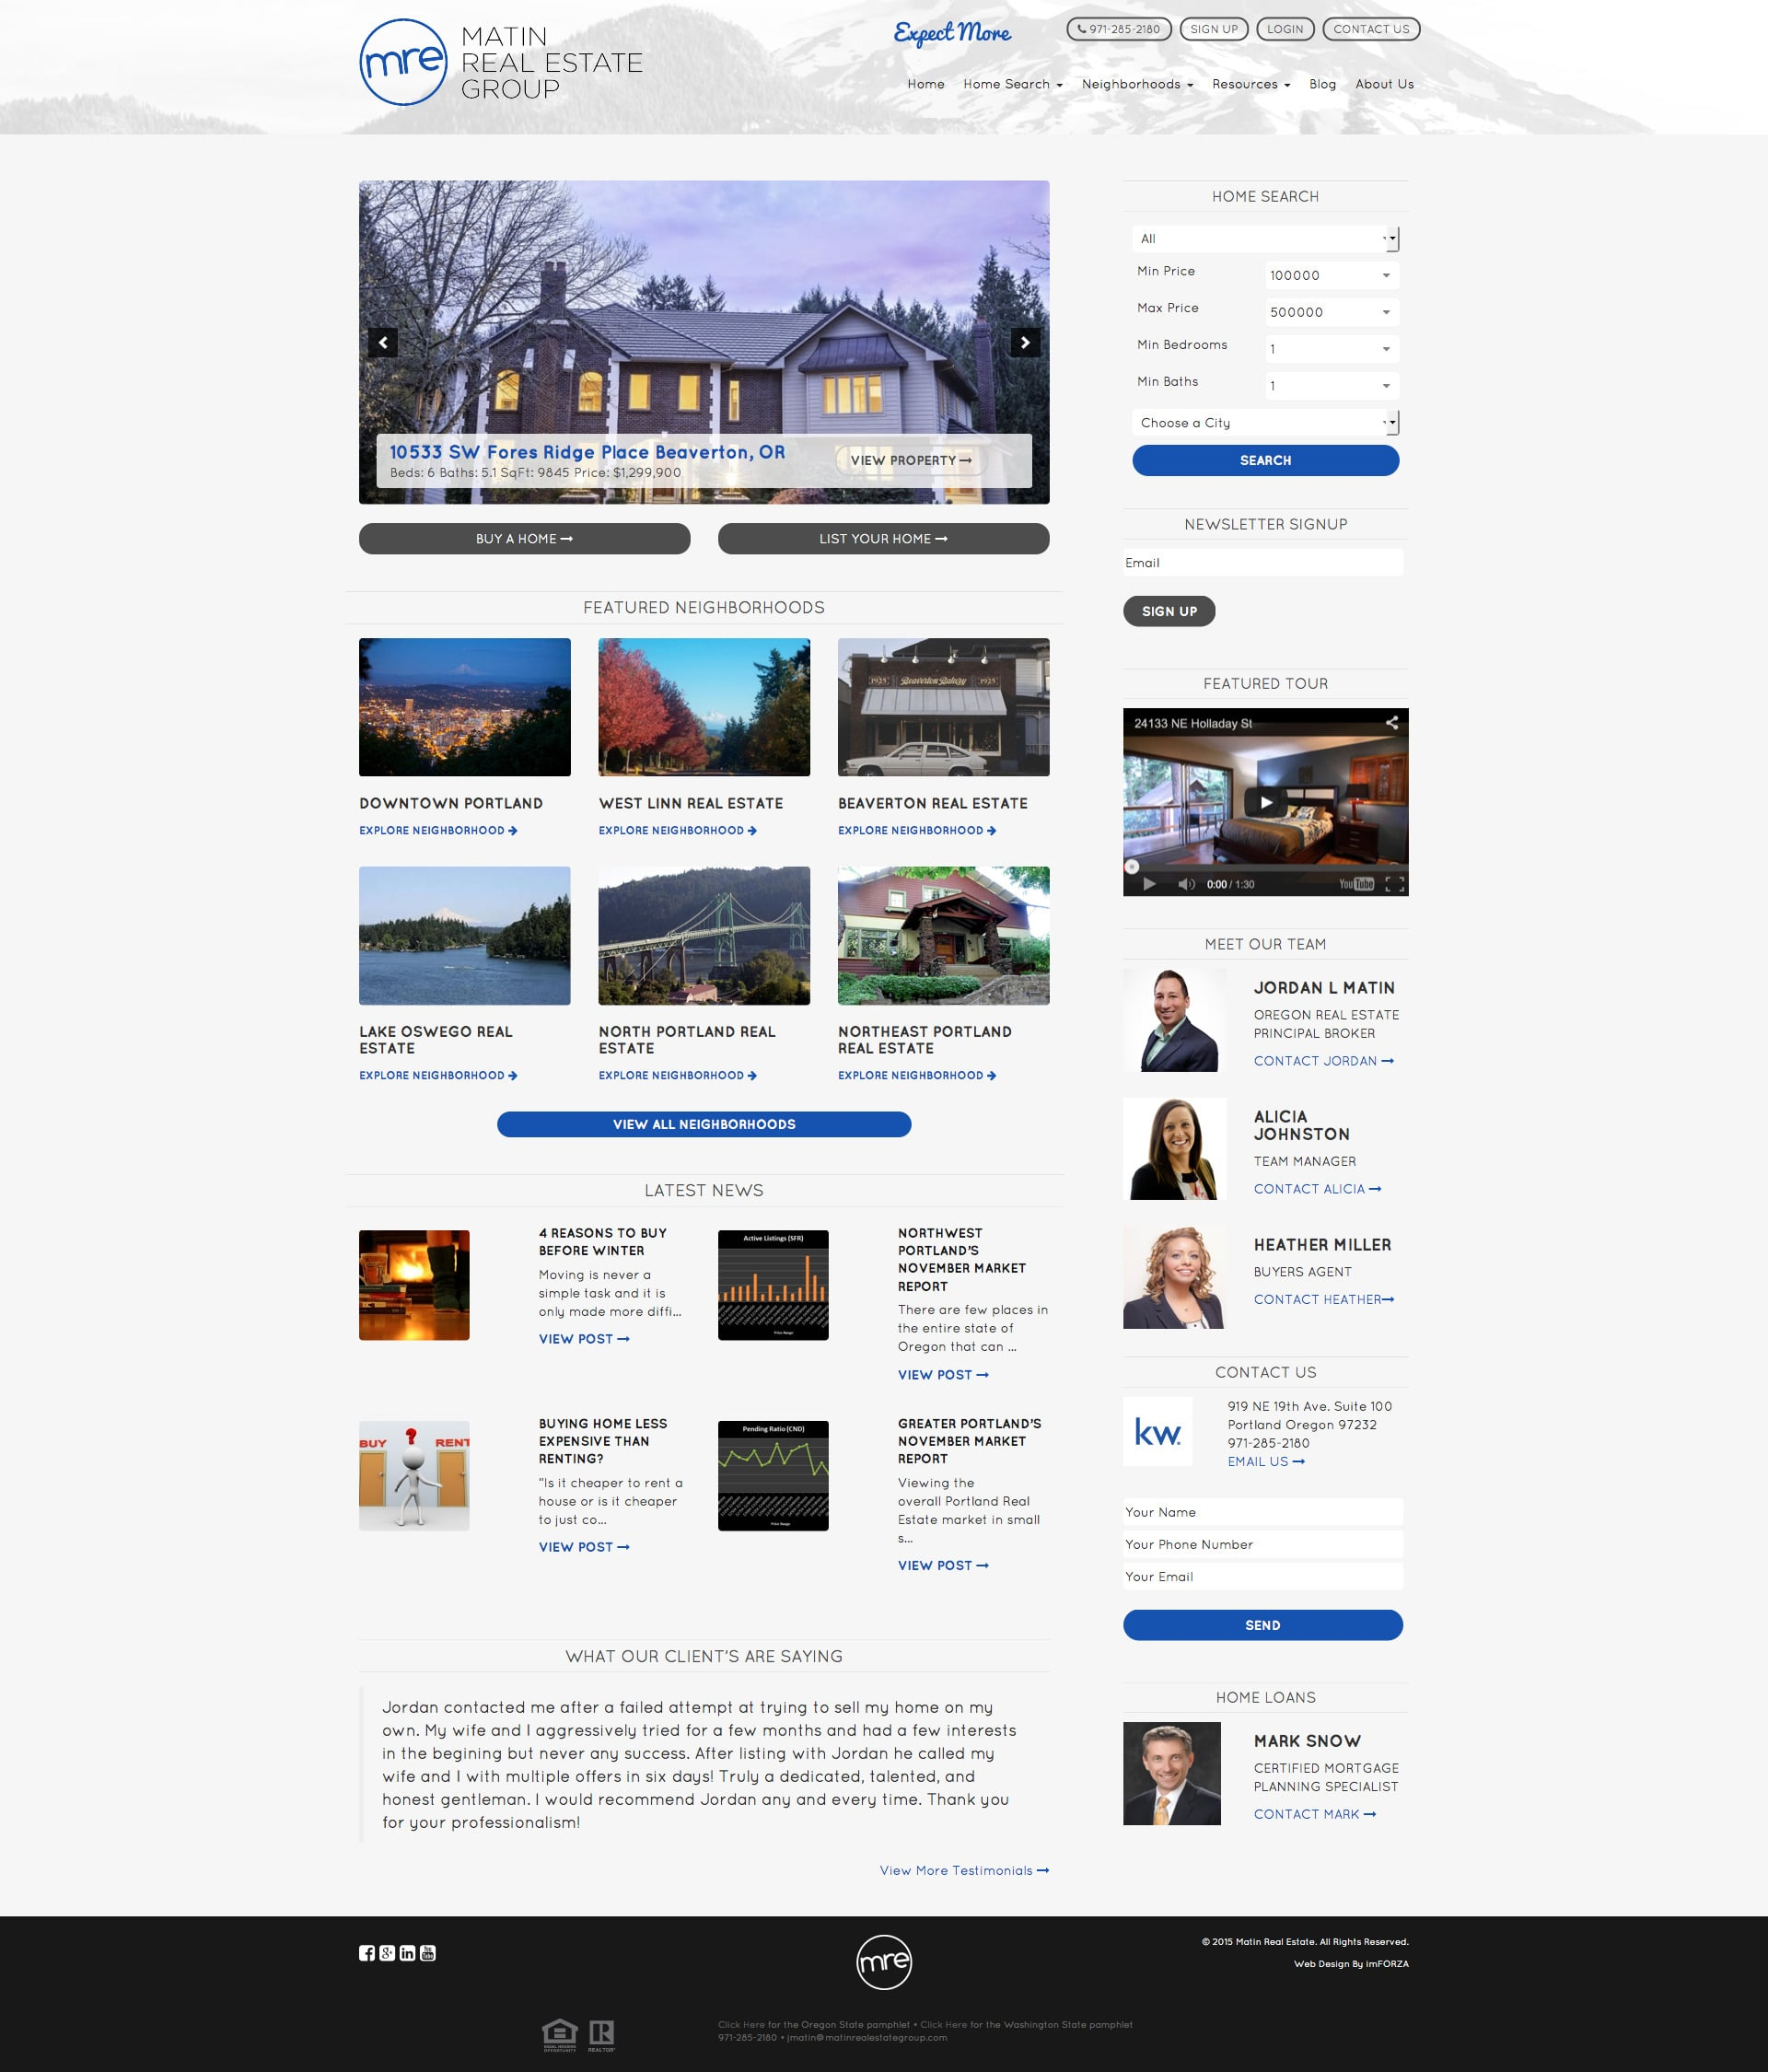 Matin Real Estate Group - Custom IDX Website by imFORZA